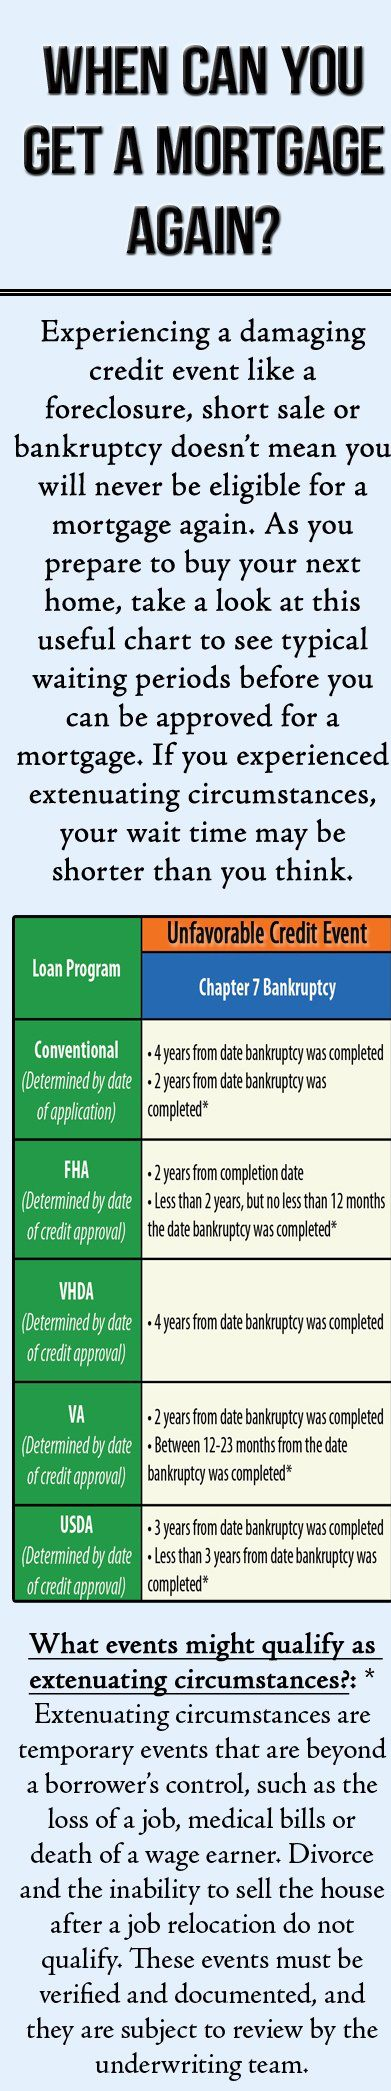 What Does an FHA Underwriter Look for During His Review?